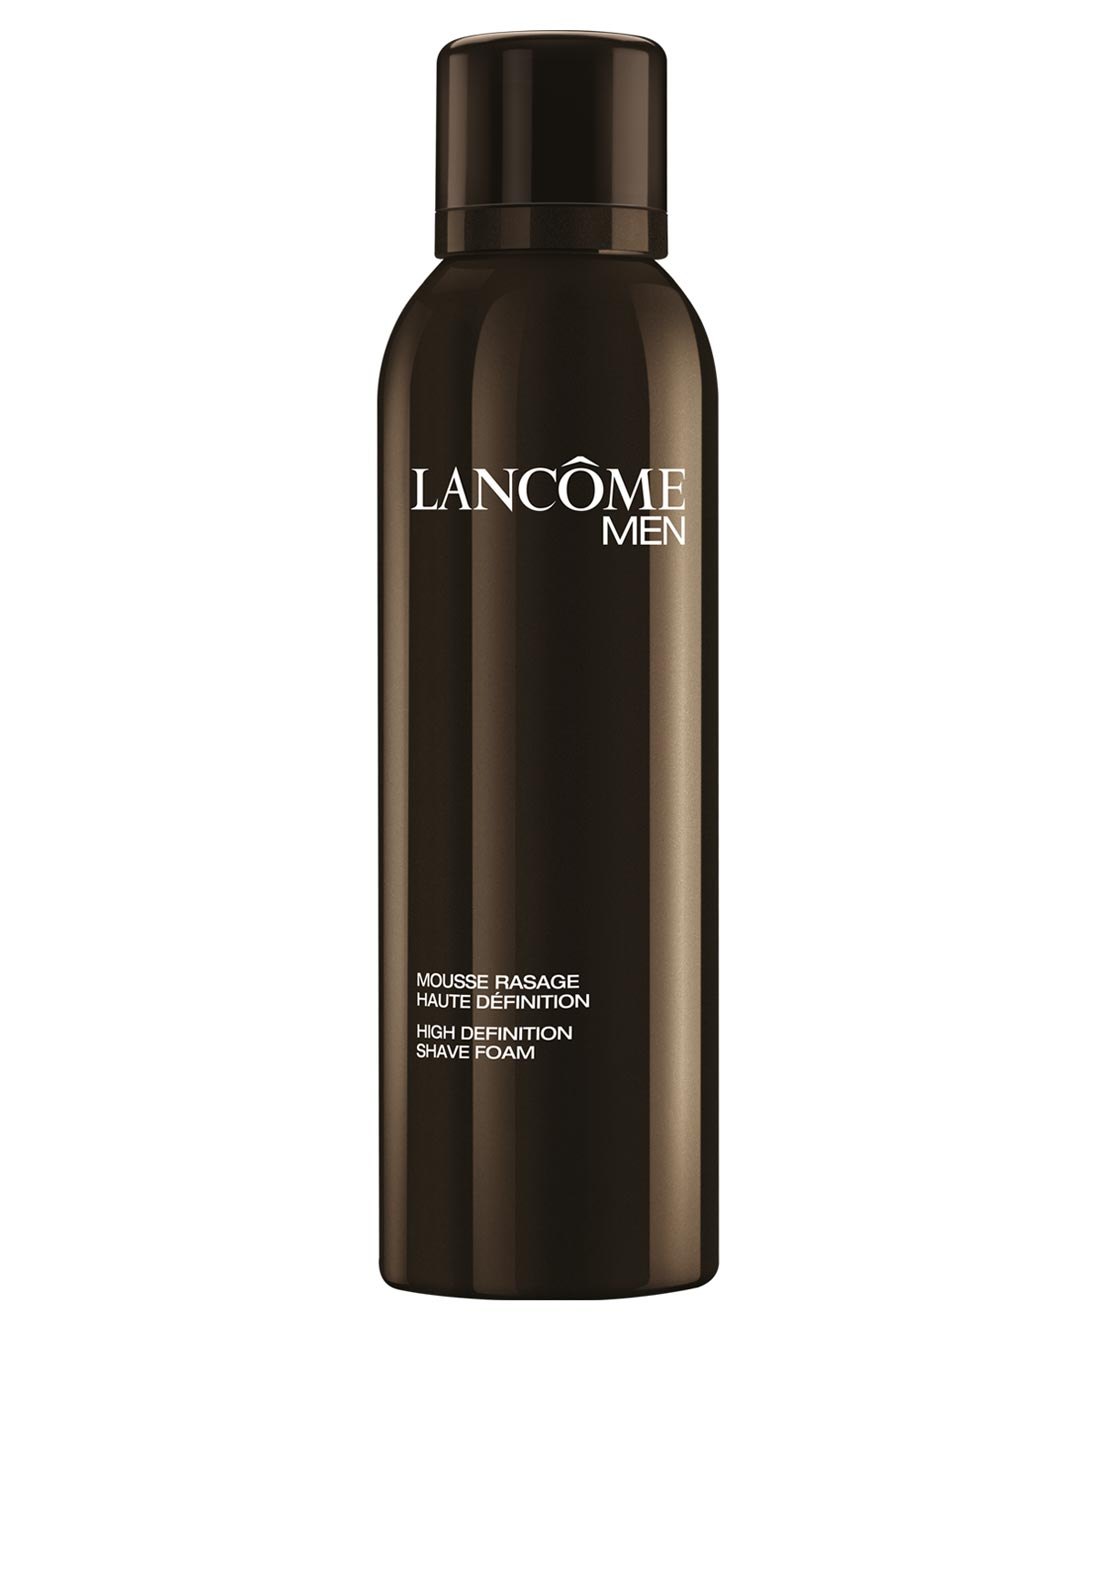 Lancome Men High Definition Shave Foam, 200ml